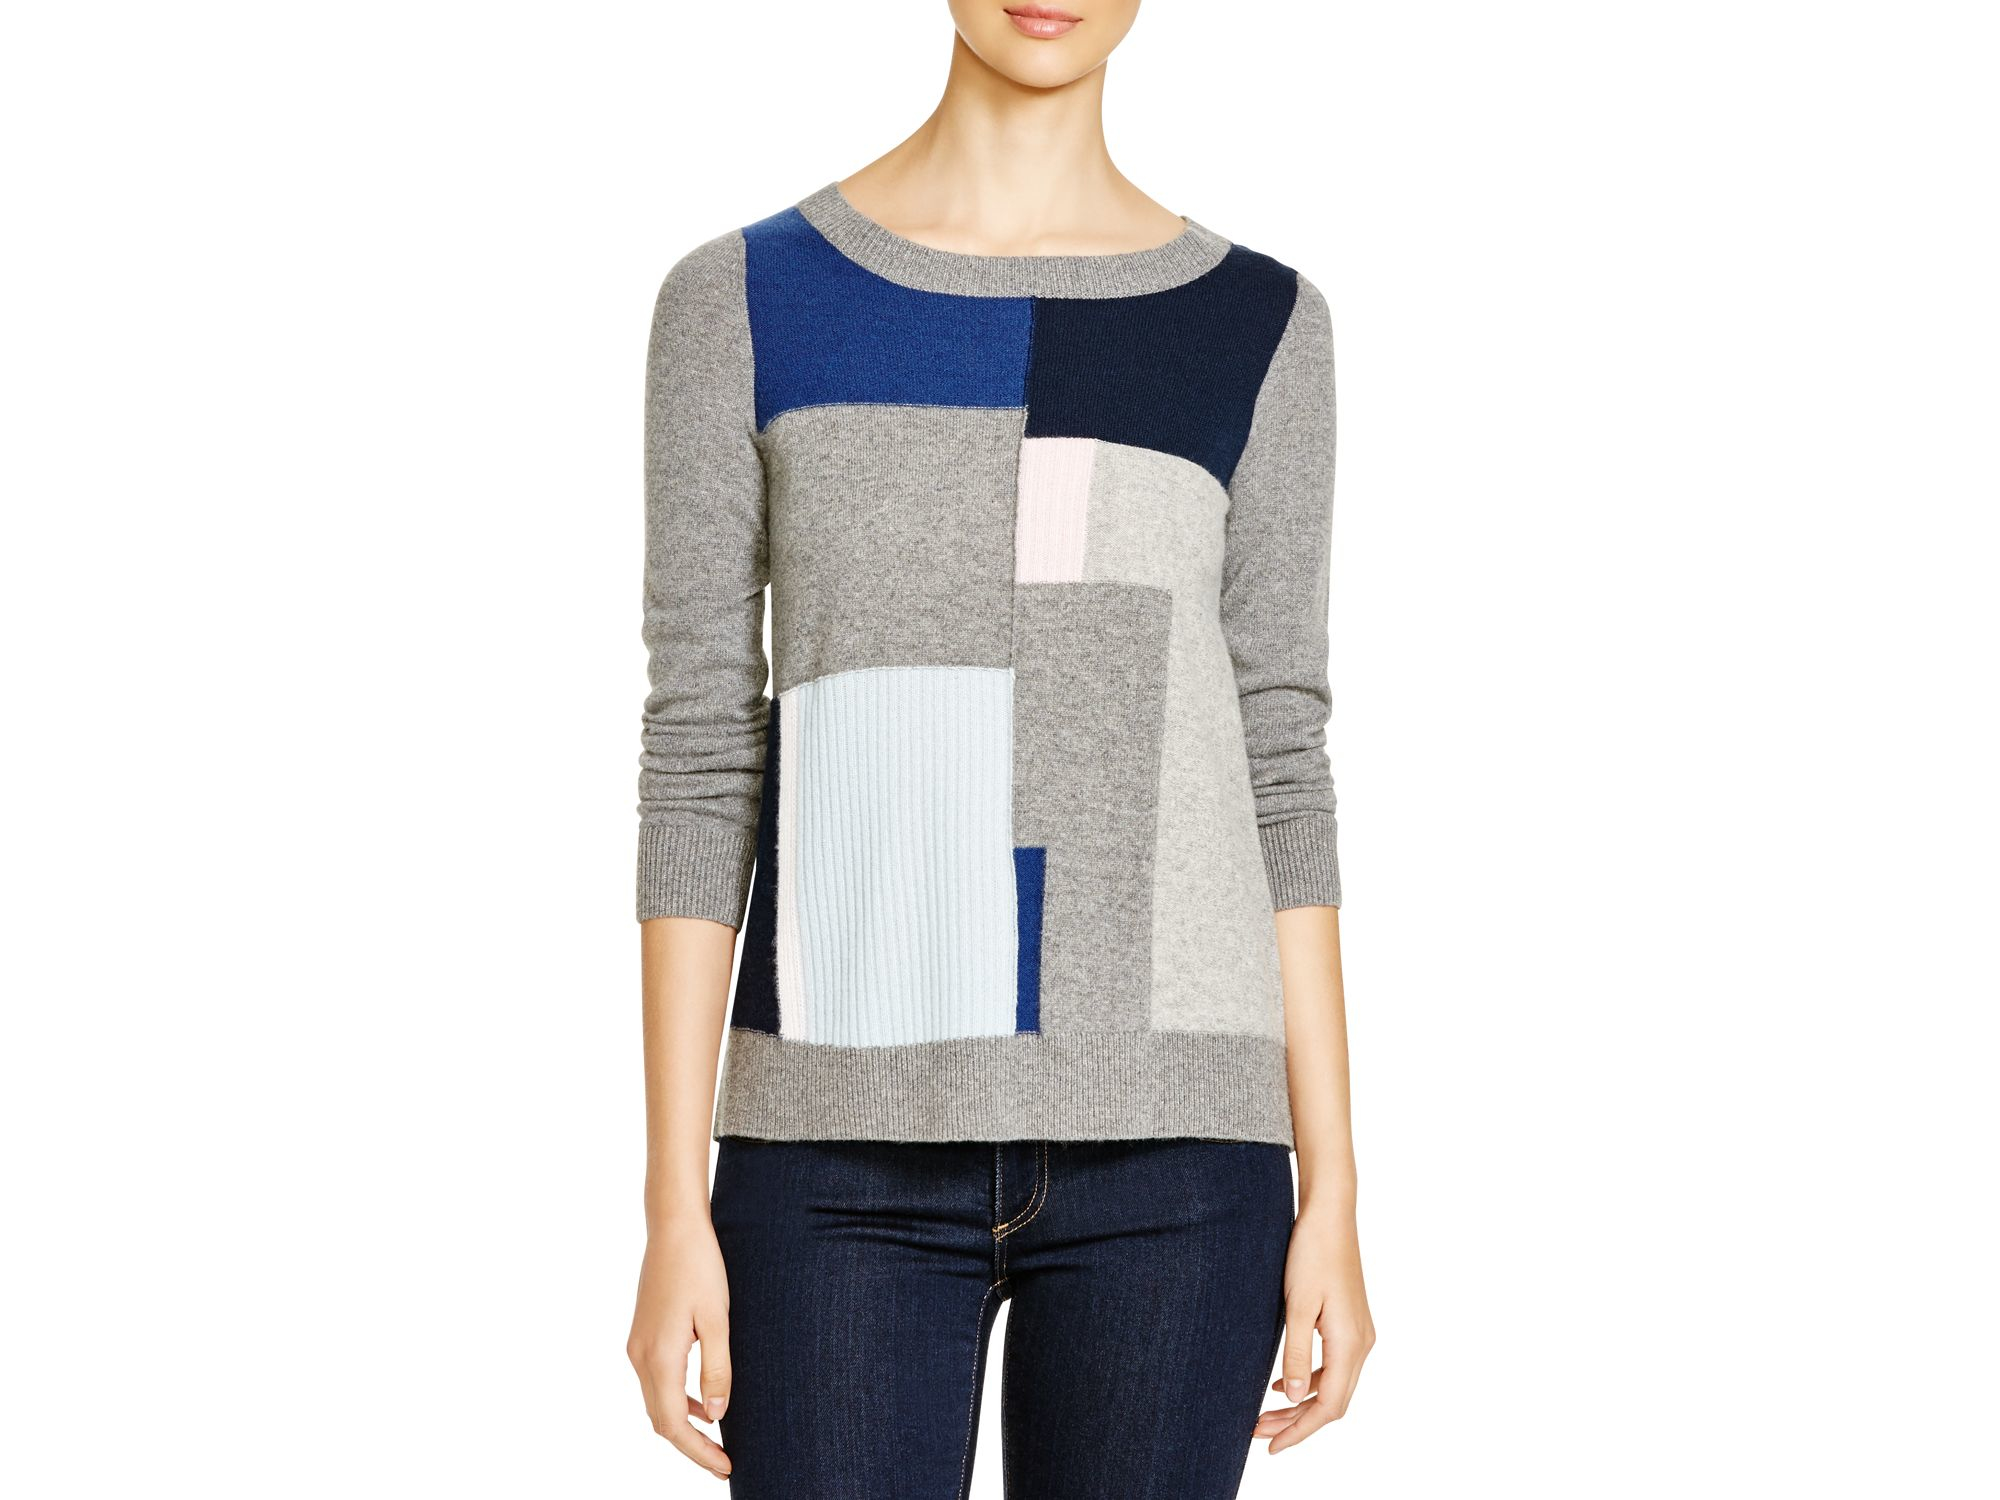 Diane von furstenberg Zandra Block-patterned Cashmere Sweater in ...